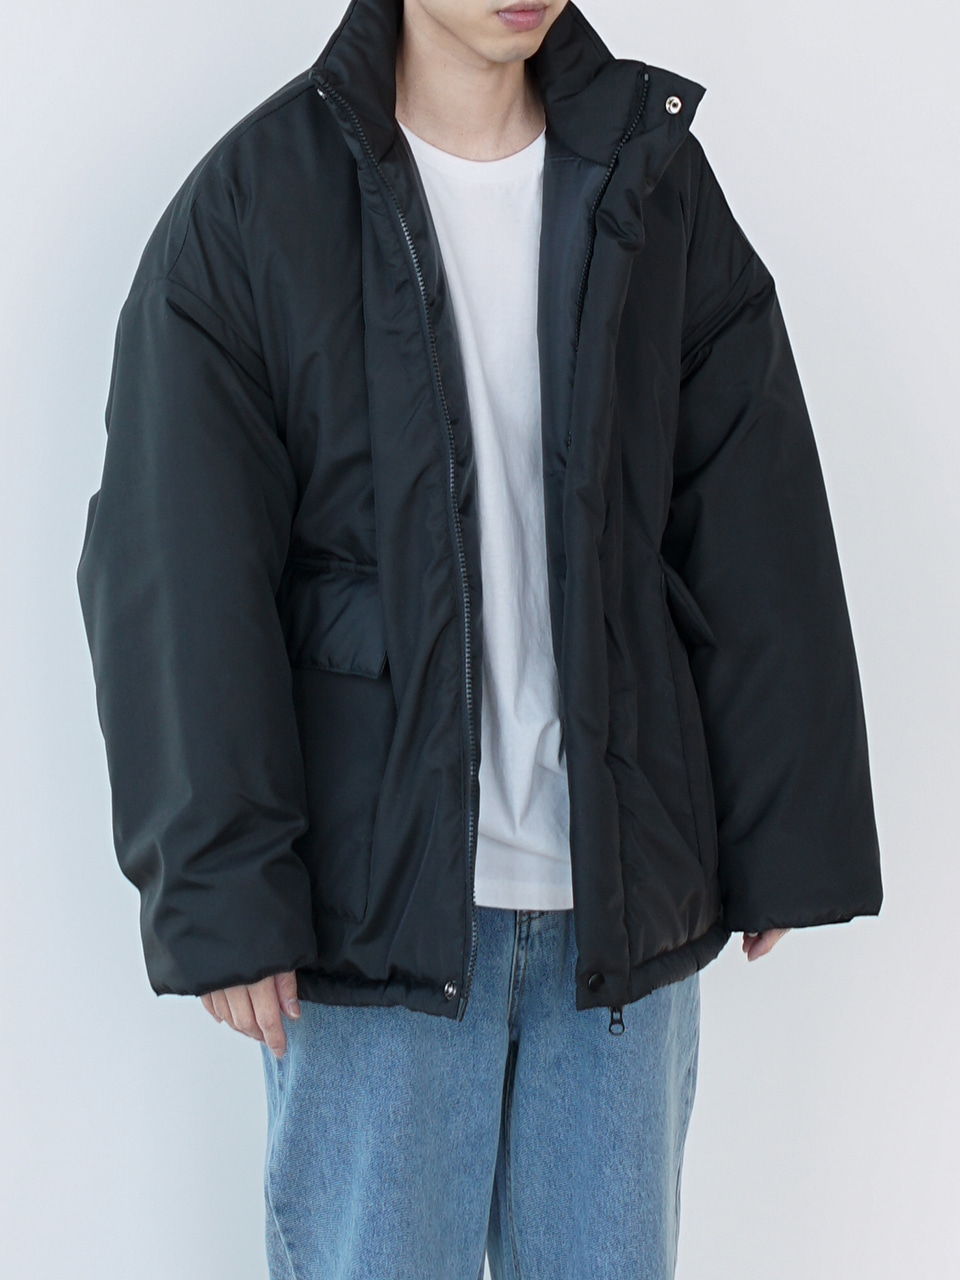 Means Hooded Padded Jacket (2color)